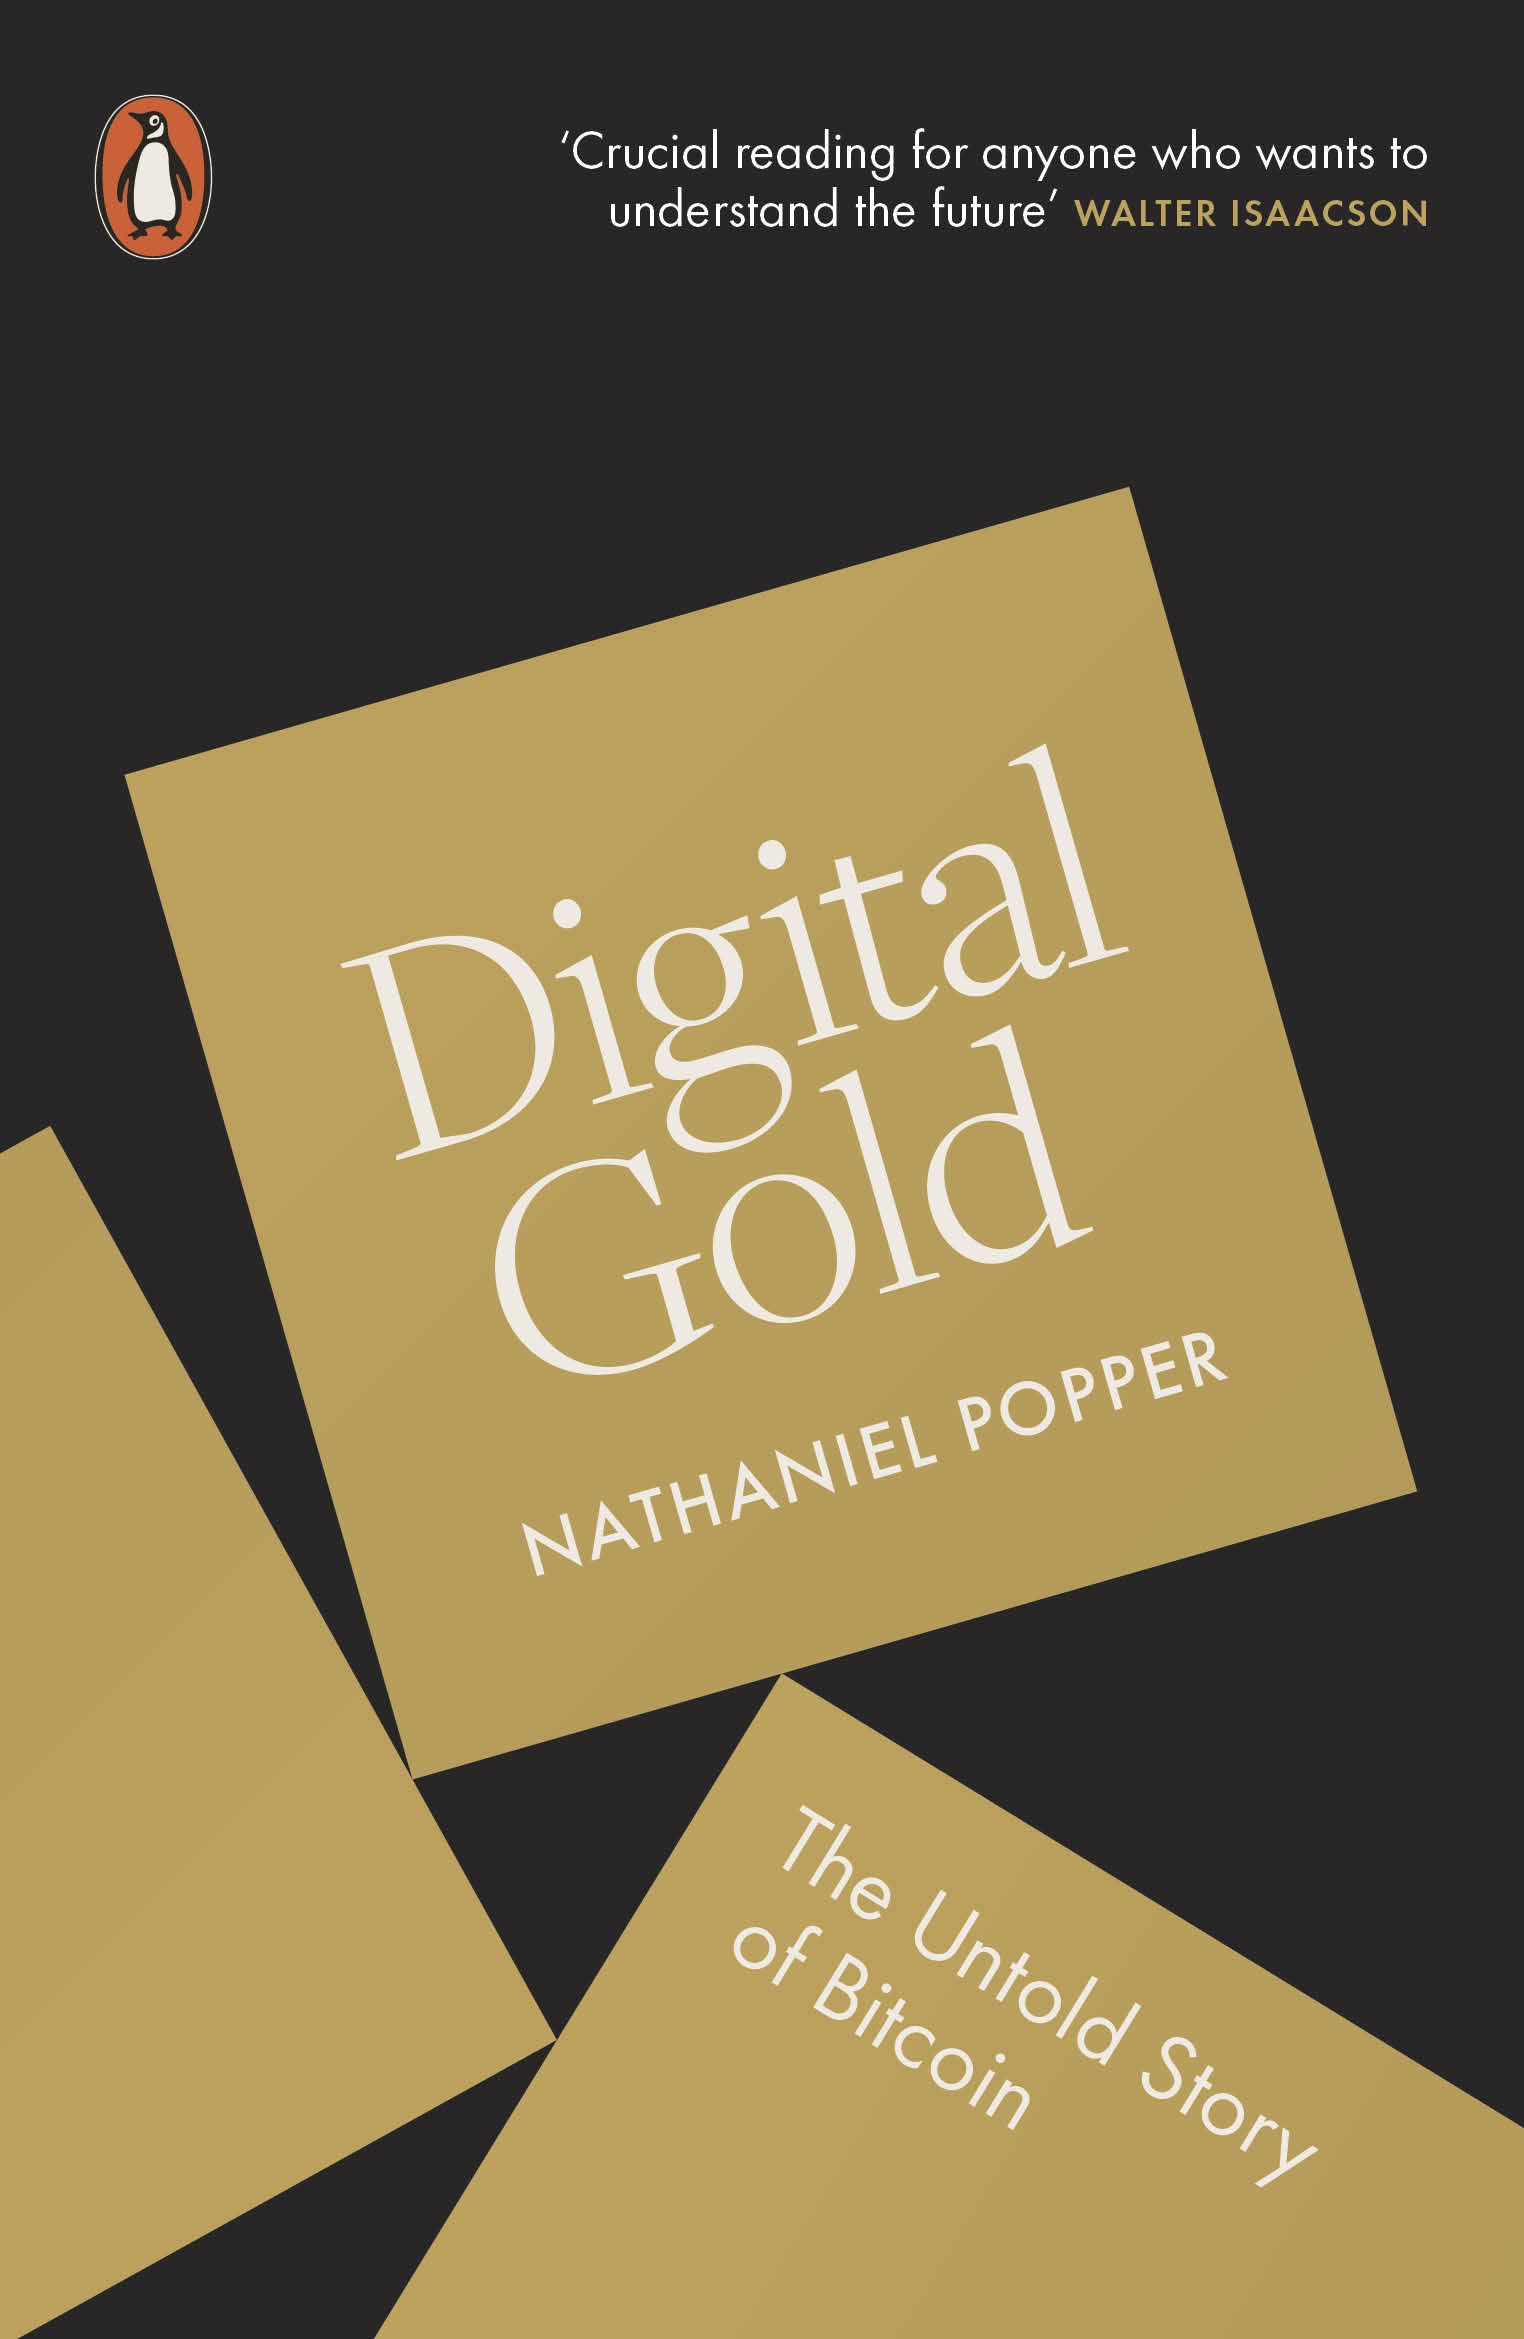 Download Ebook Digital Gold by Nathaniel Popper Pdf